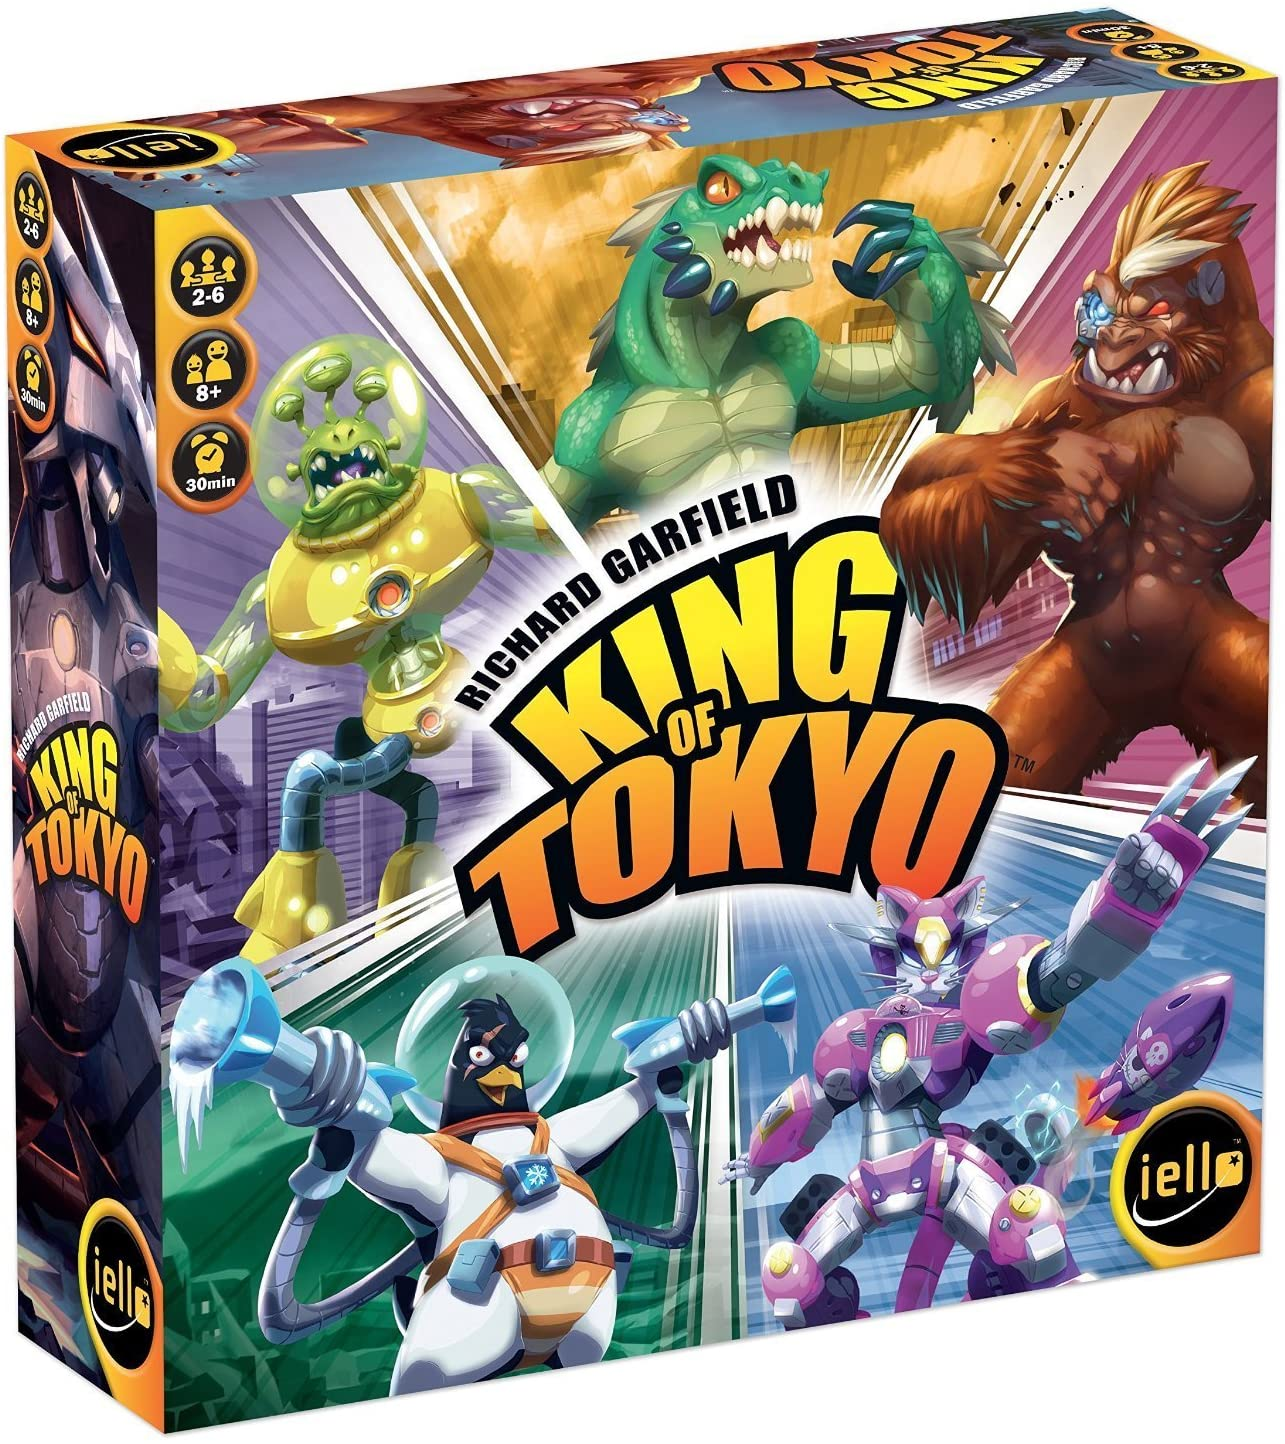 Picture of the board game.